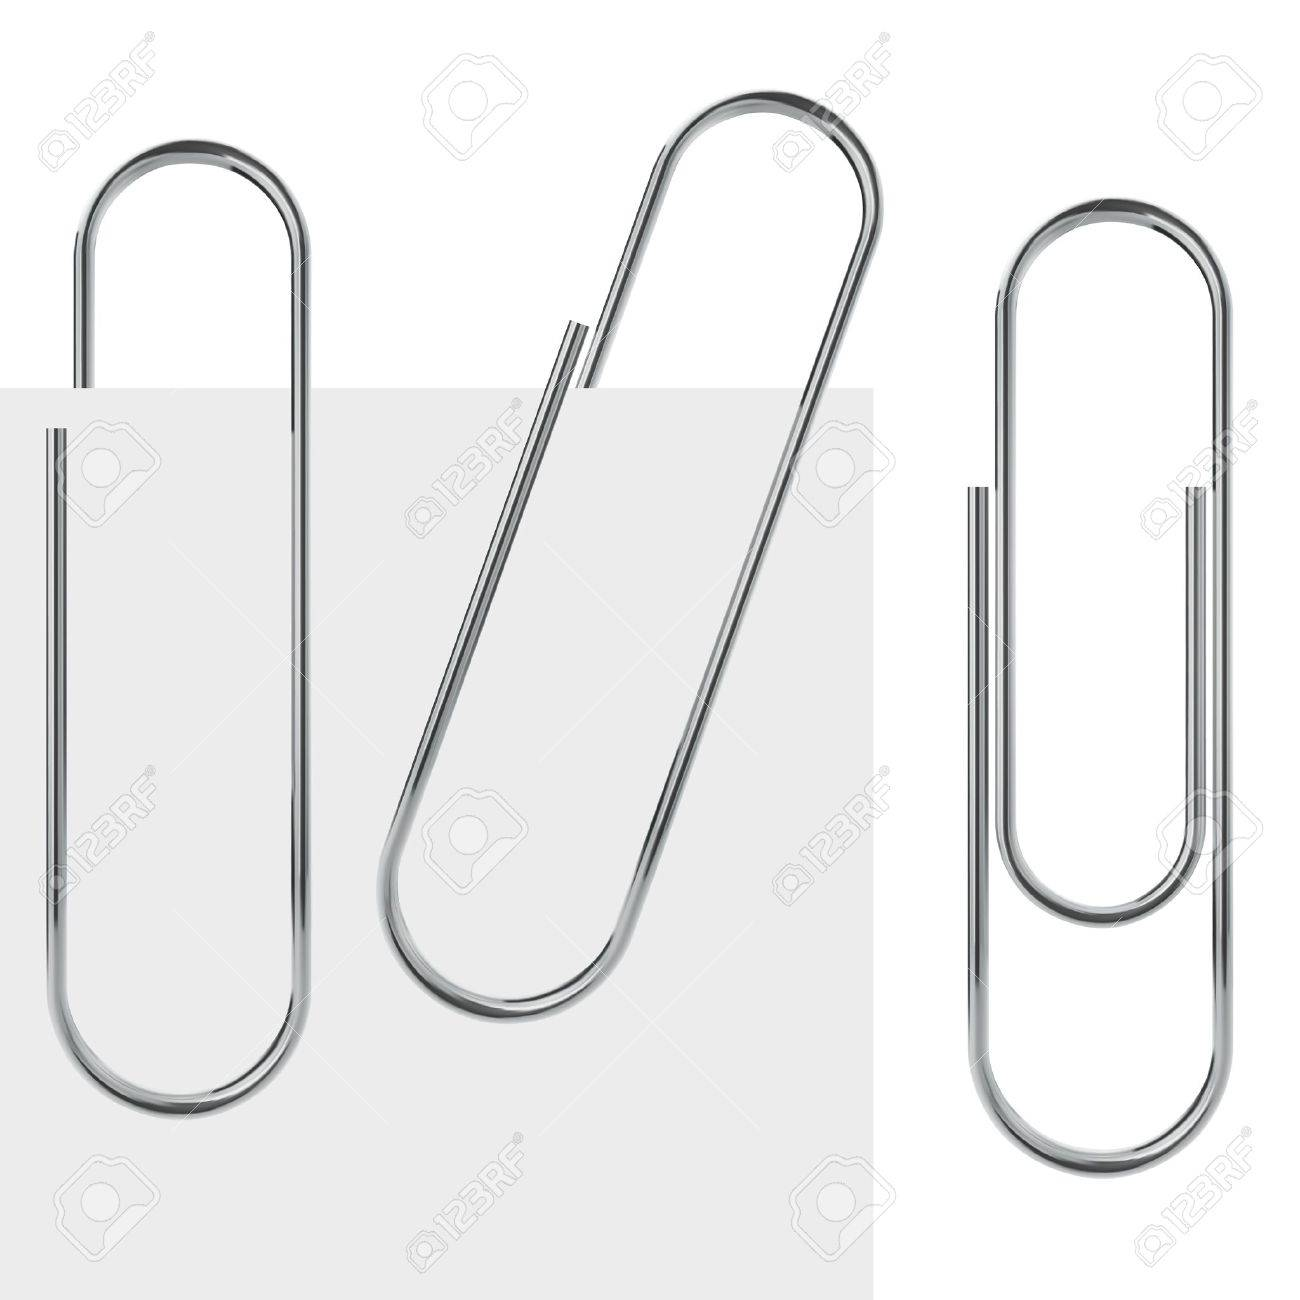 Metal paperclip template isolated on white background with samples - 22569549